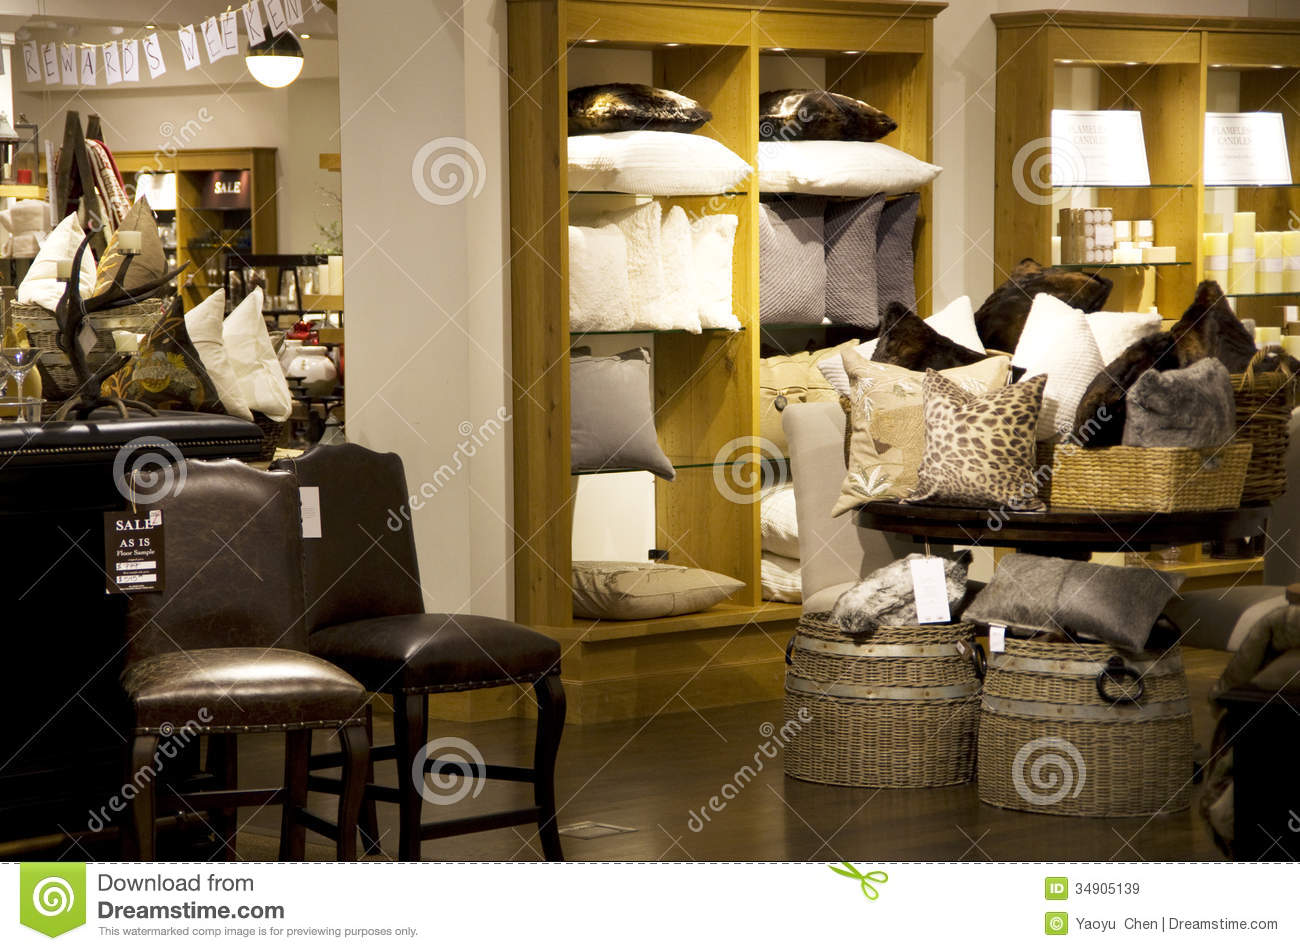 Home goods store stock image image of lighting decor - Home decor stores in charlotte nc image ...